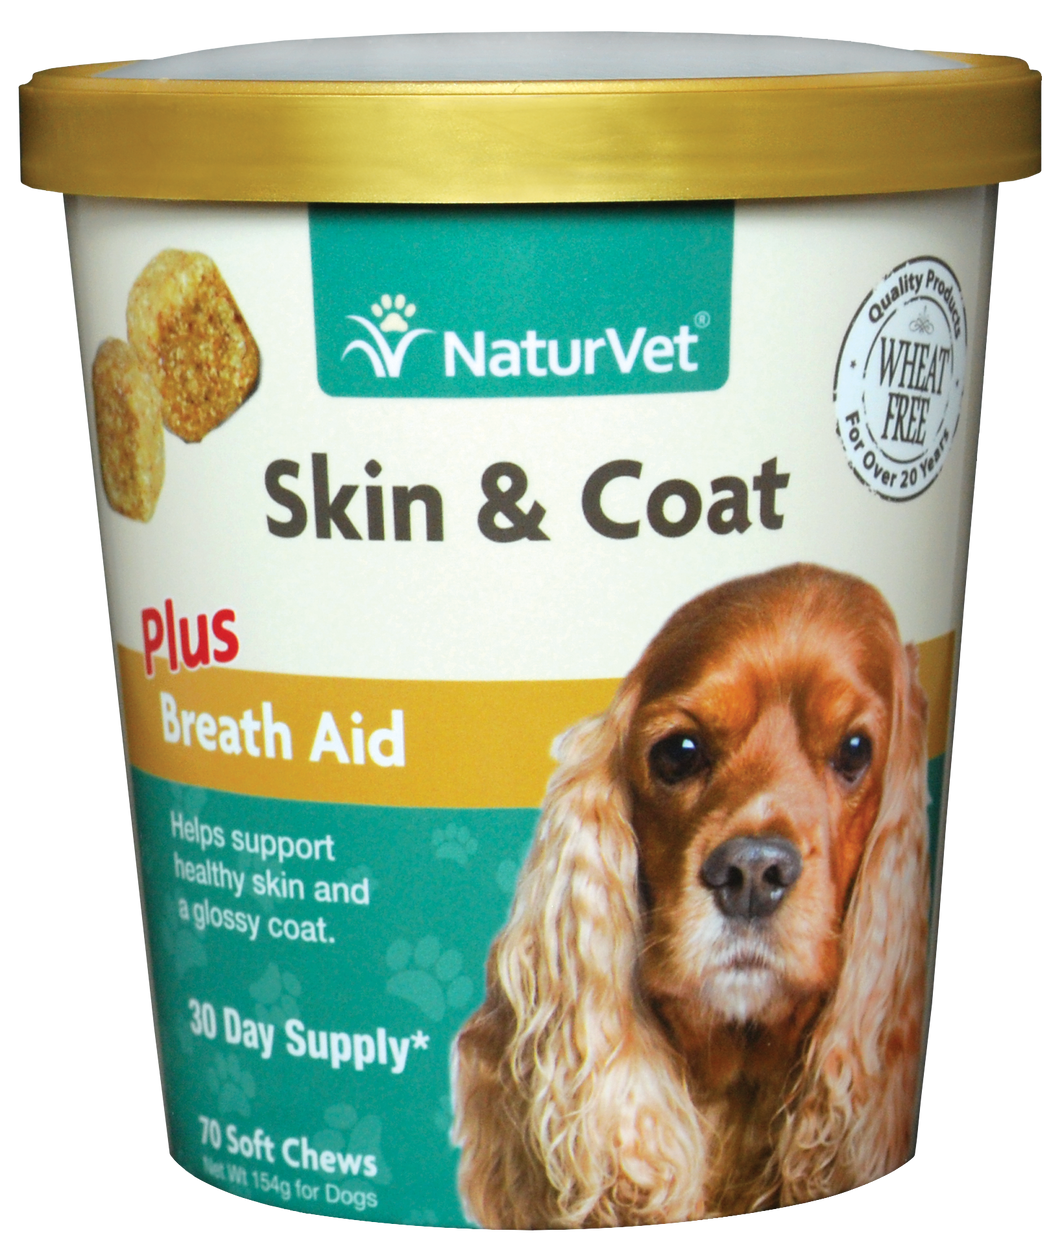 Naturvet Soft Chews - Skin & Coat Plus Breath Aid 70ct